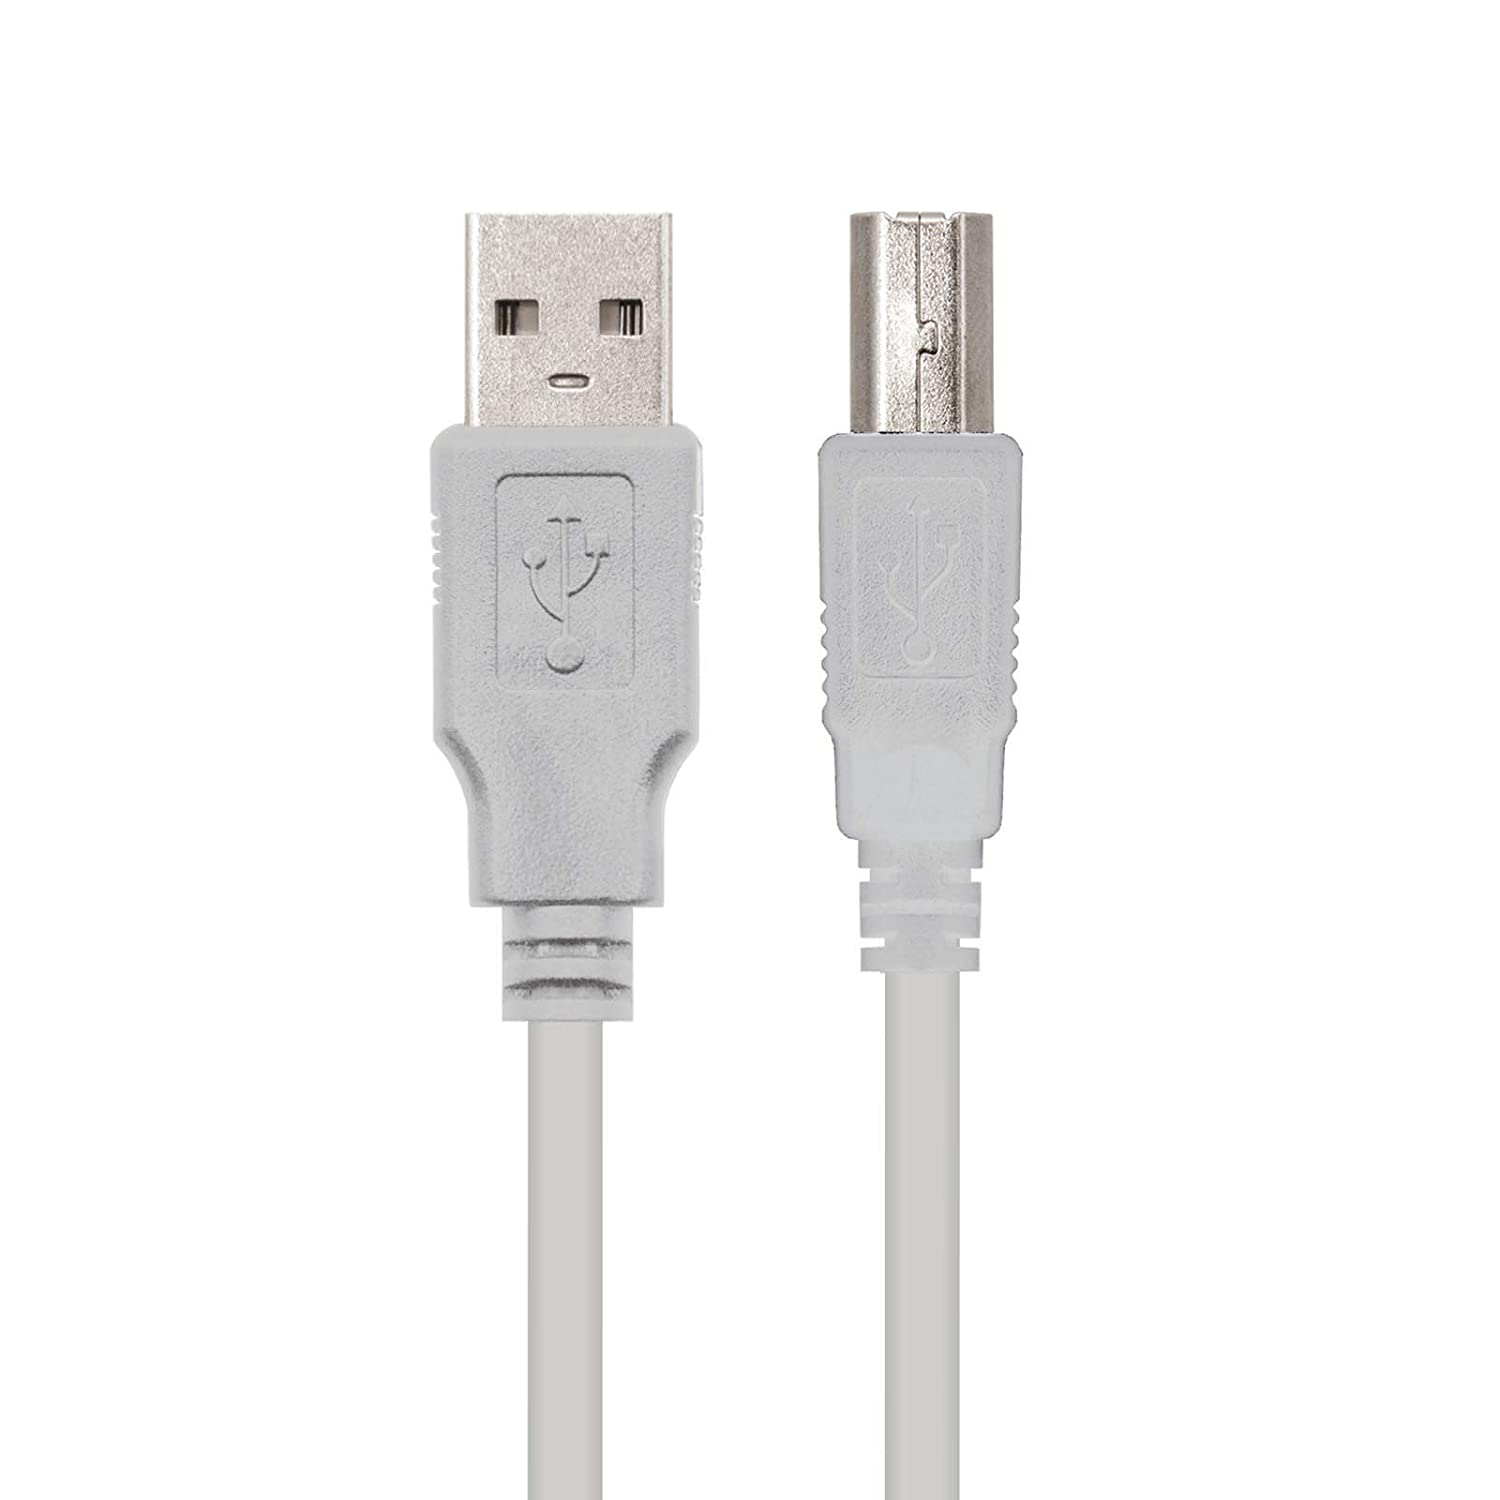 Amazon.com: Cable USB 2.0 para IMPRESORA A-B 1,8M: Computers ...